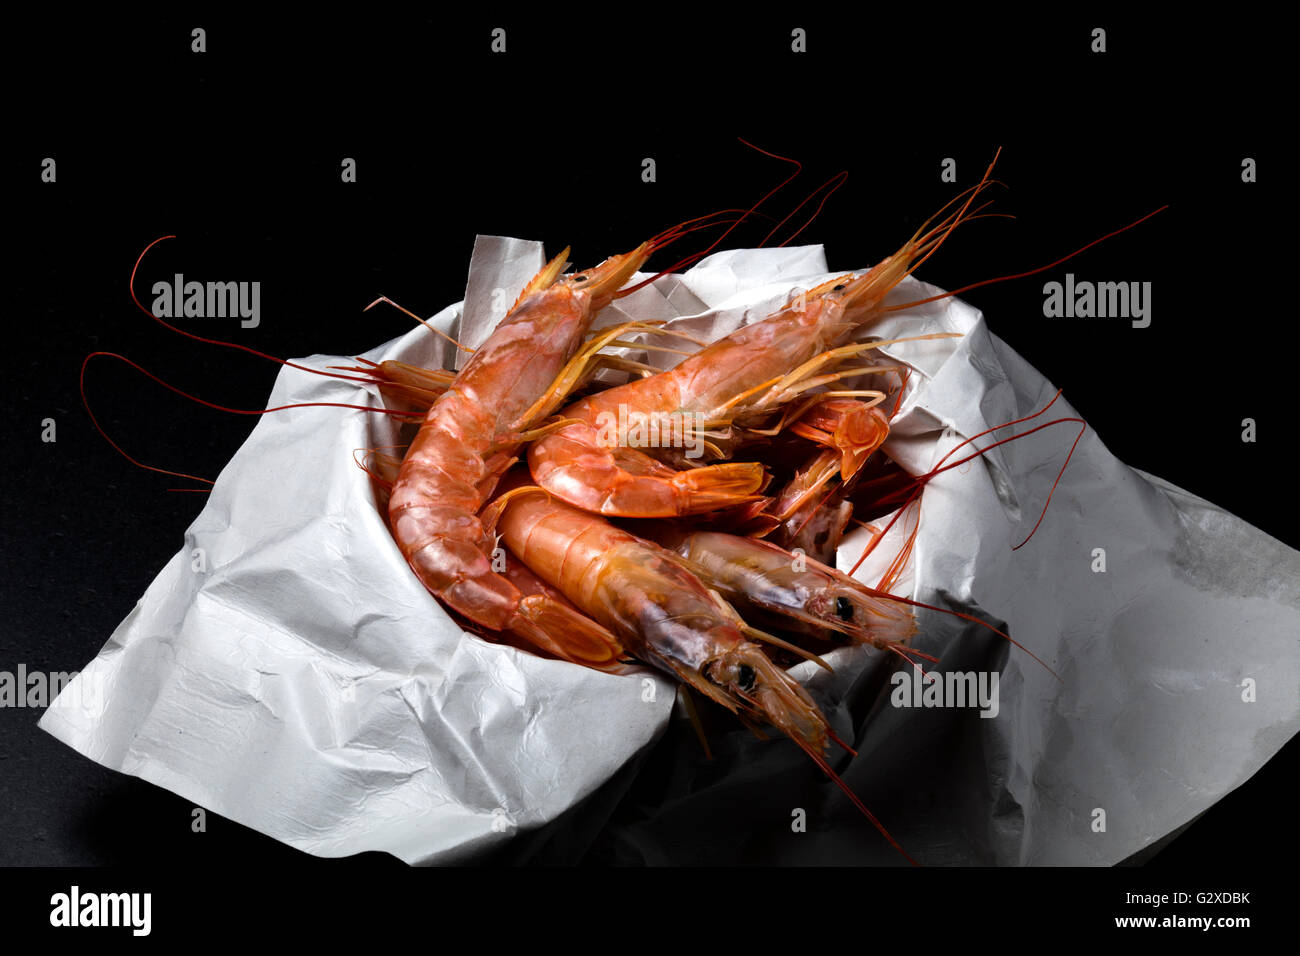 fresh prawn just bought in the market on a black stone. Free space on top - Stock Image